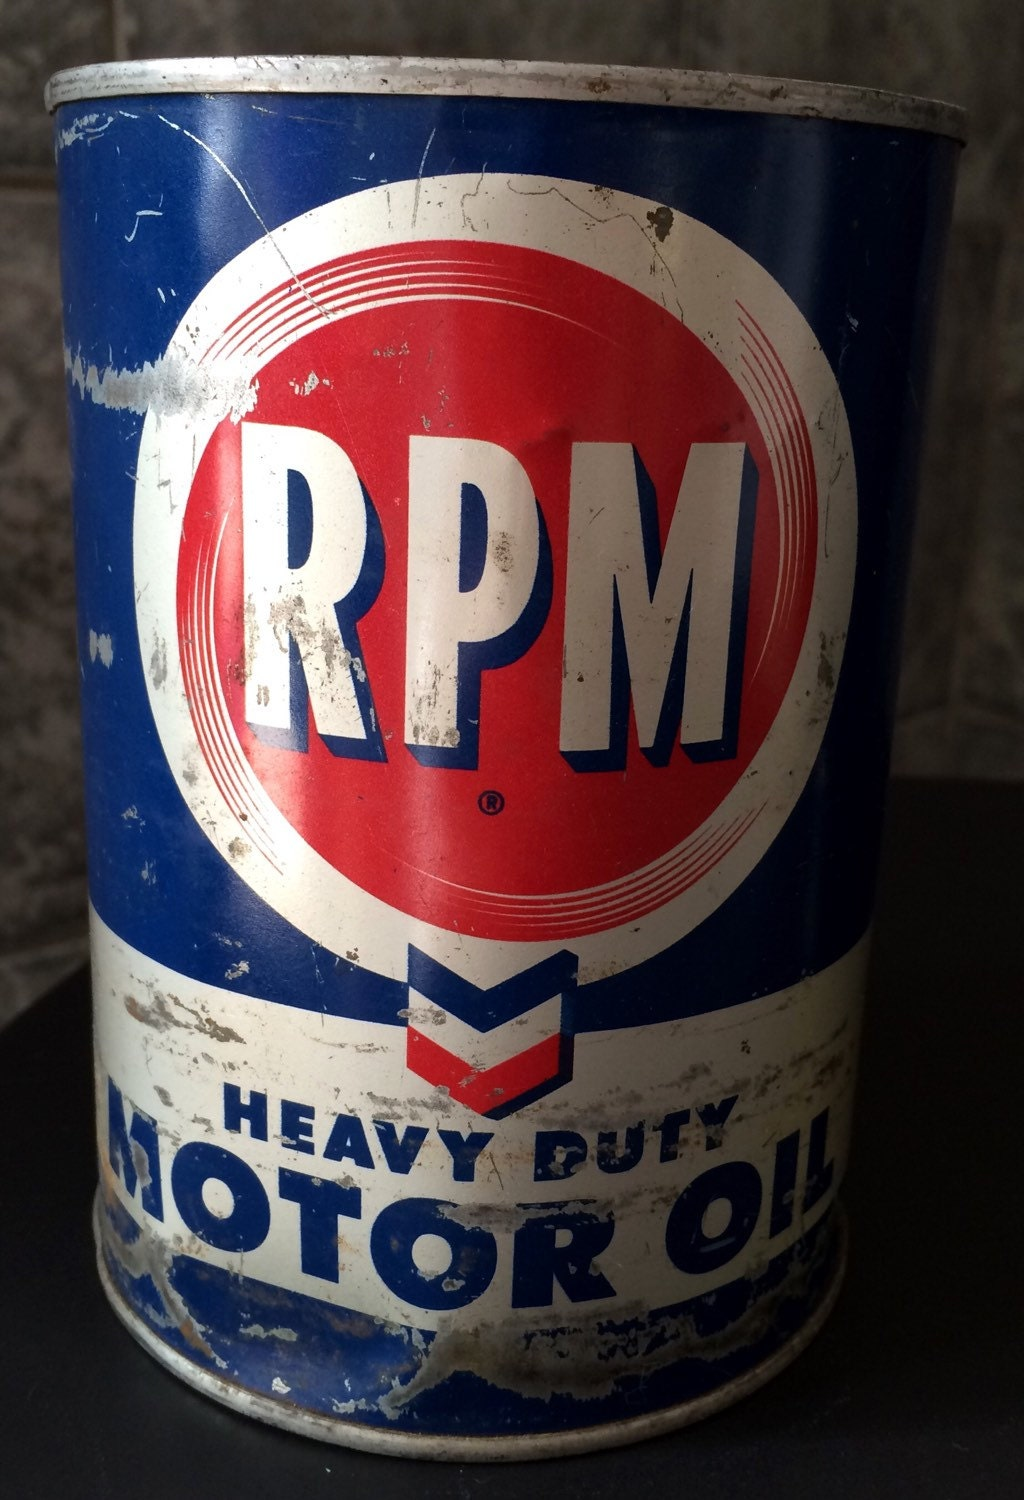 Vintage rpm heavy duty motor oil can empty display collectible for Heavy duty motor oil